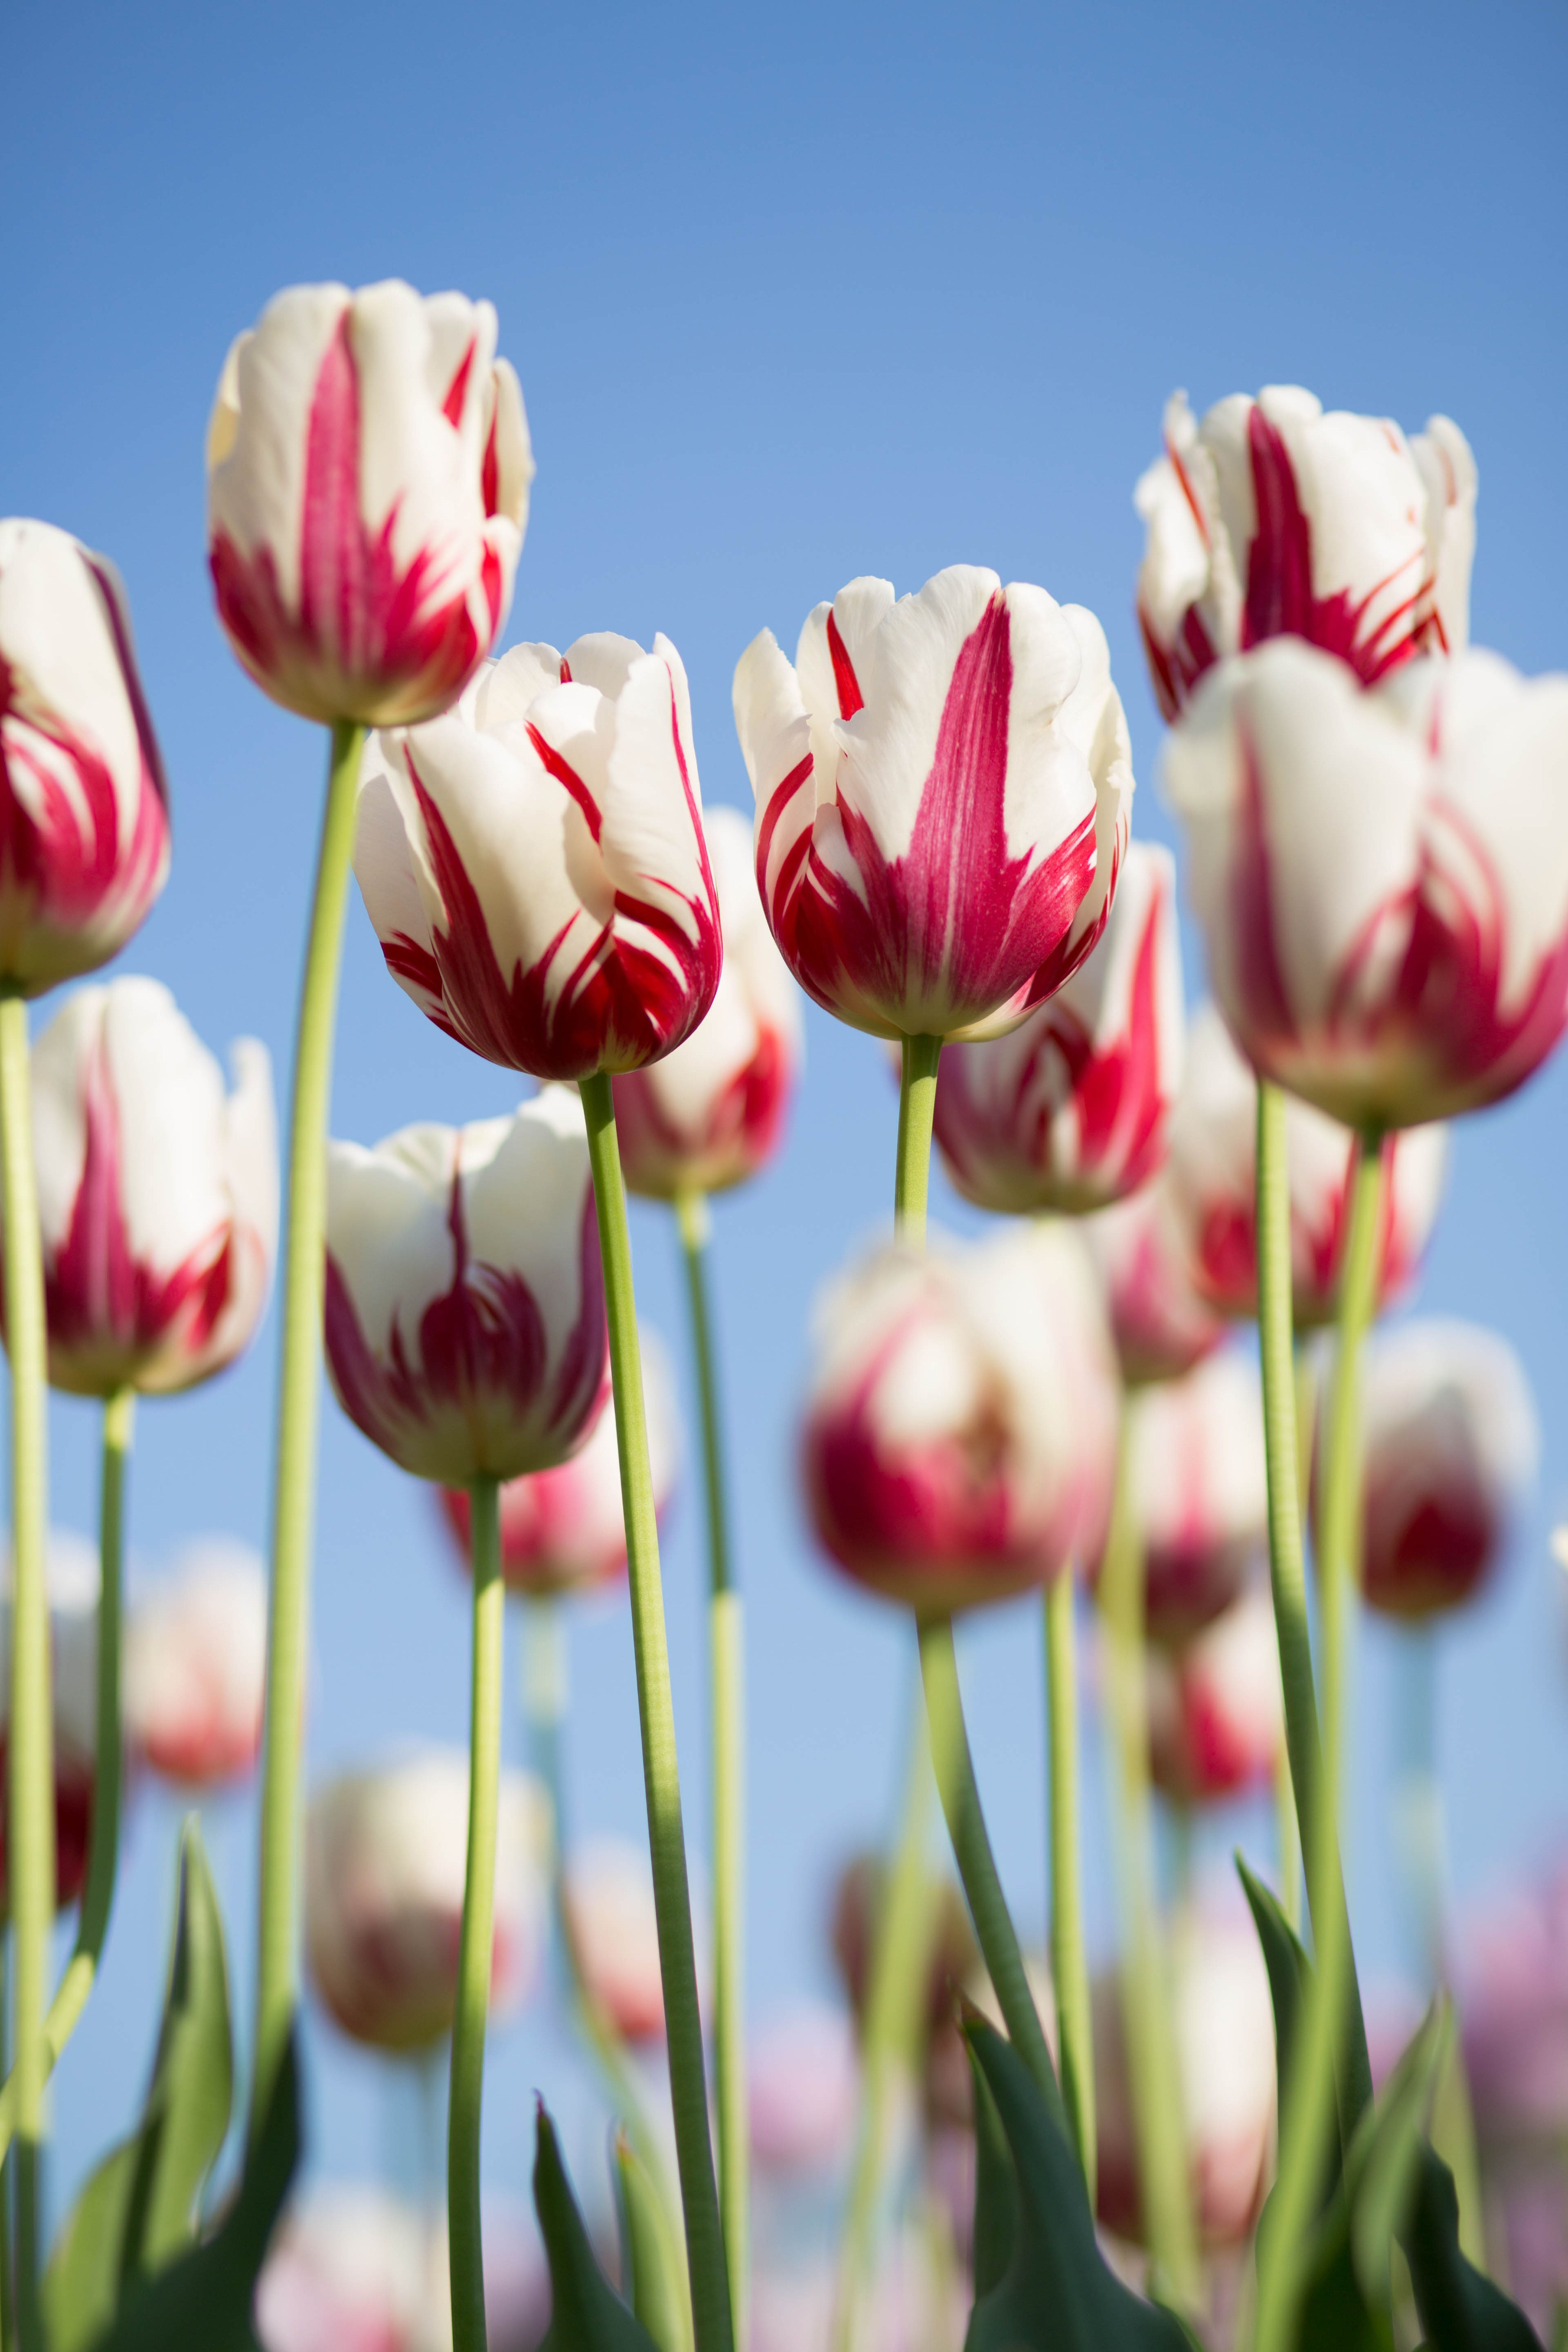 Tulip, flower, pink and white HD photo by Kwang